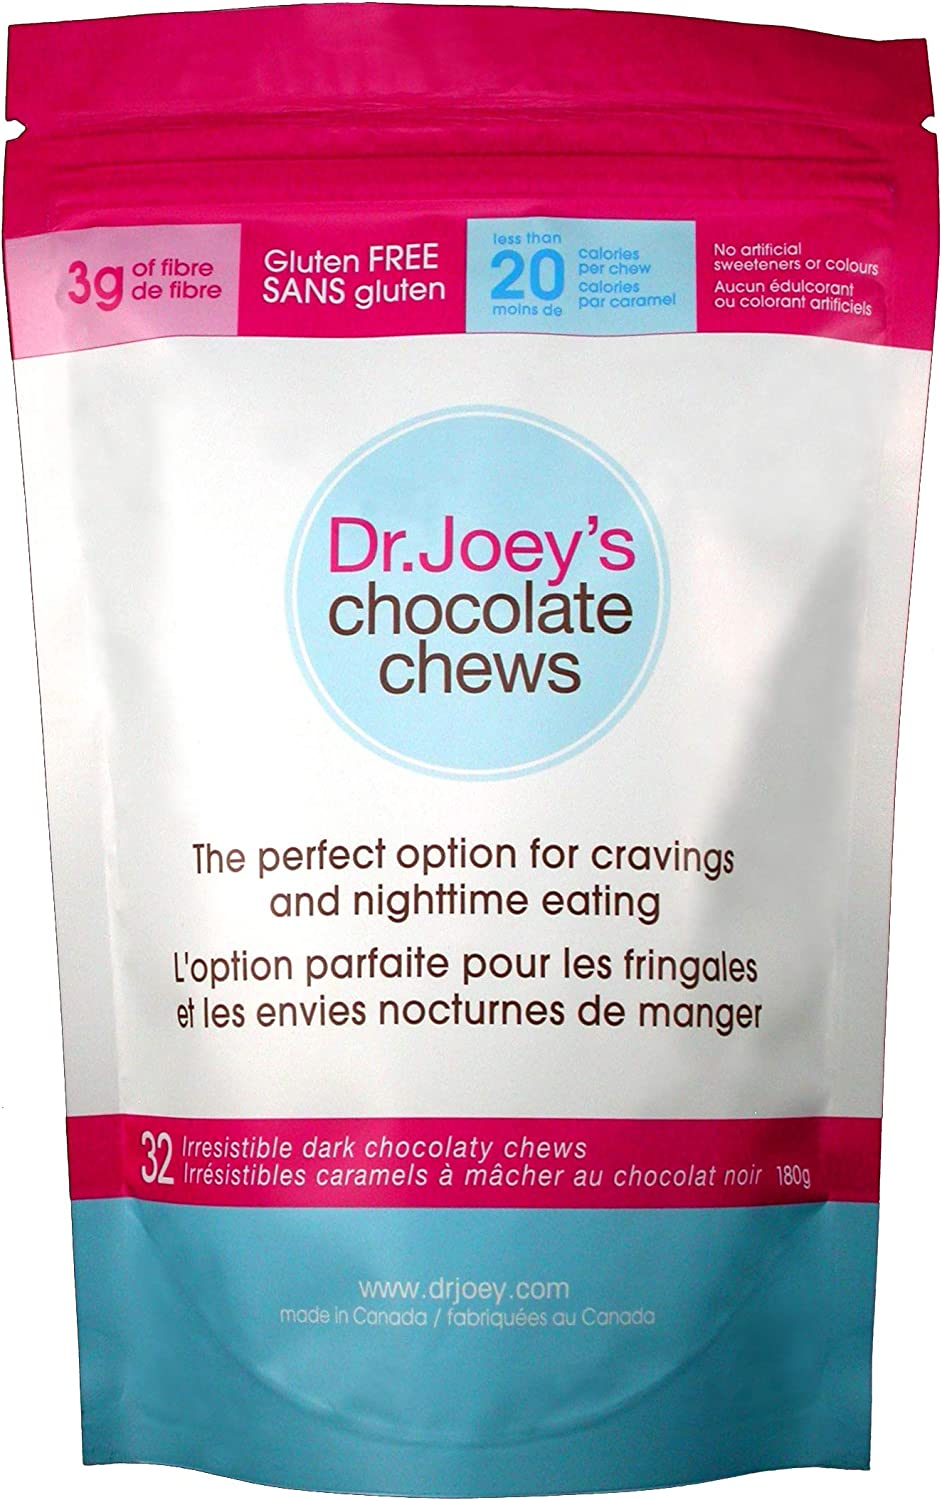 Dr. Joey's Chocolate Chews - Premium Dark Chocolate Candies That Help Alleviate After Dinner Cravings and Promote Appetite Control -20 Calories per chew, Gluten Free, and 3g of Fiber. 32 Chews